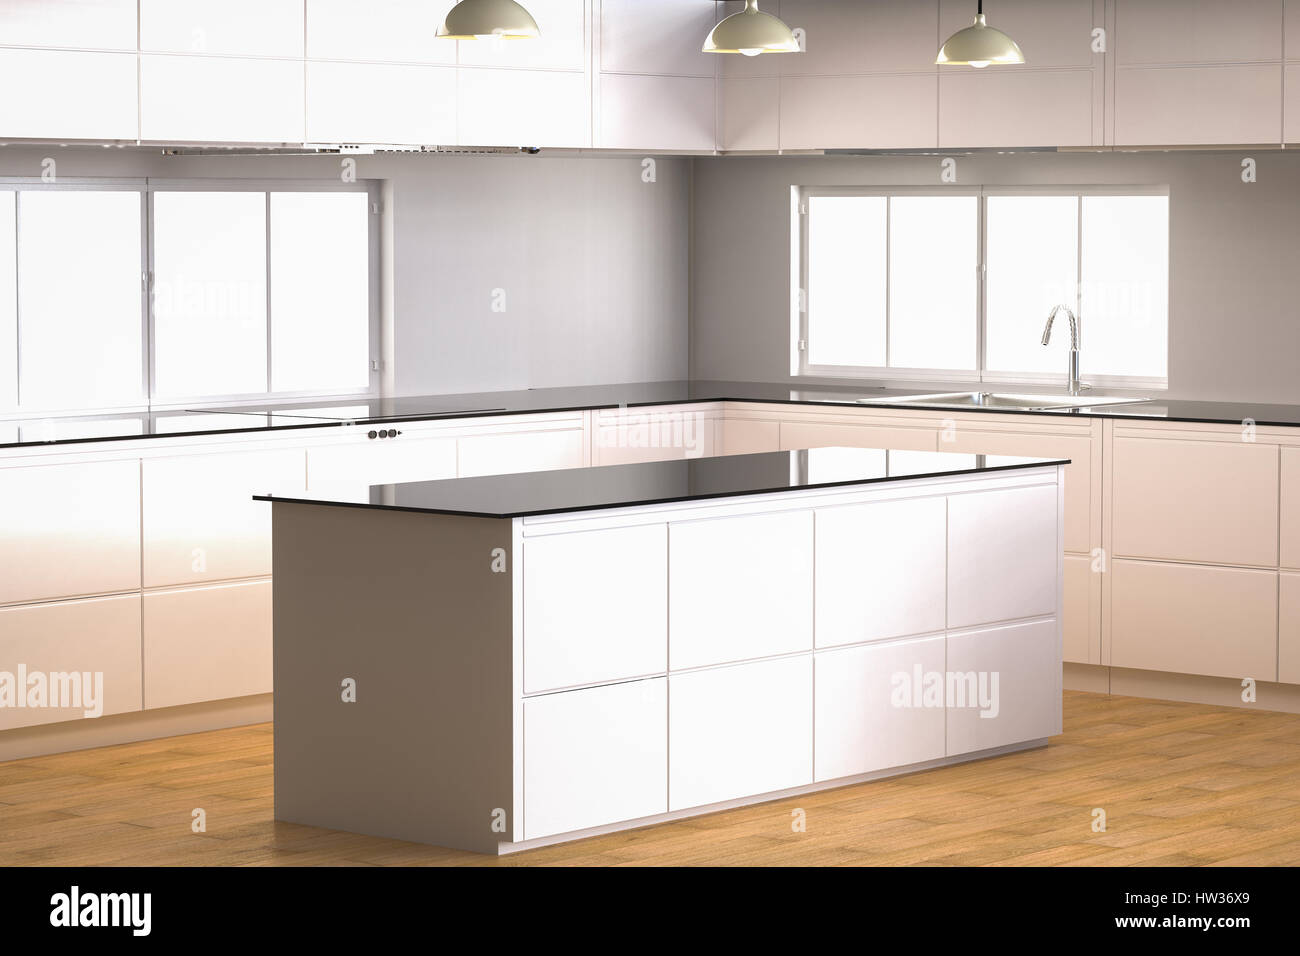 3d Rendering Empty Kitchen Cabinet With Counter